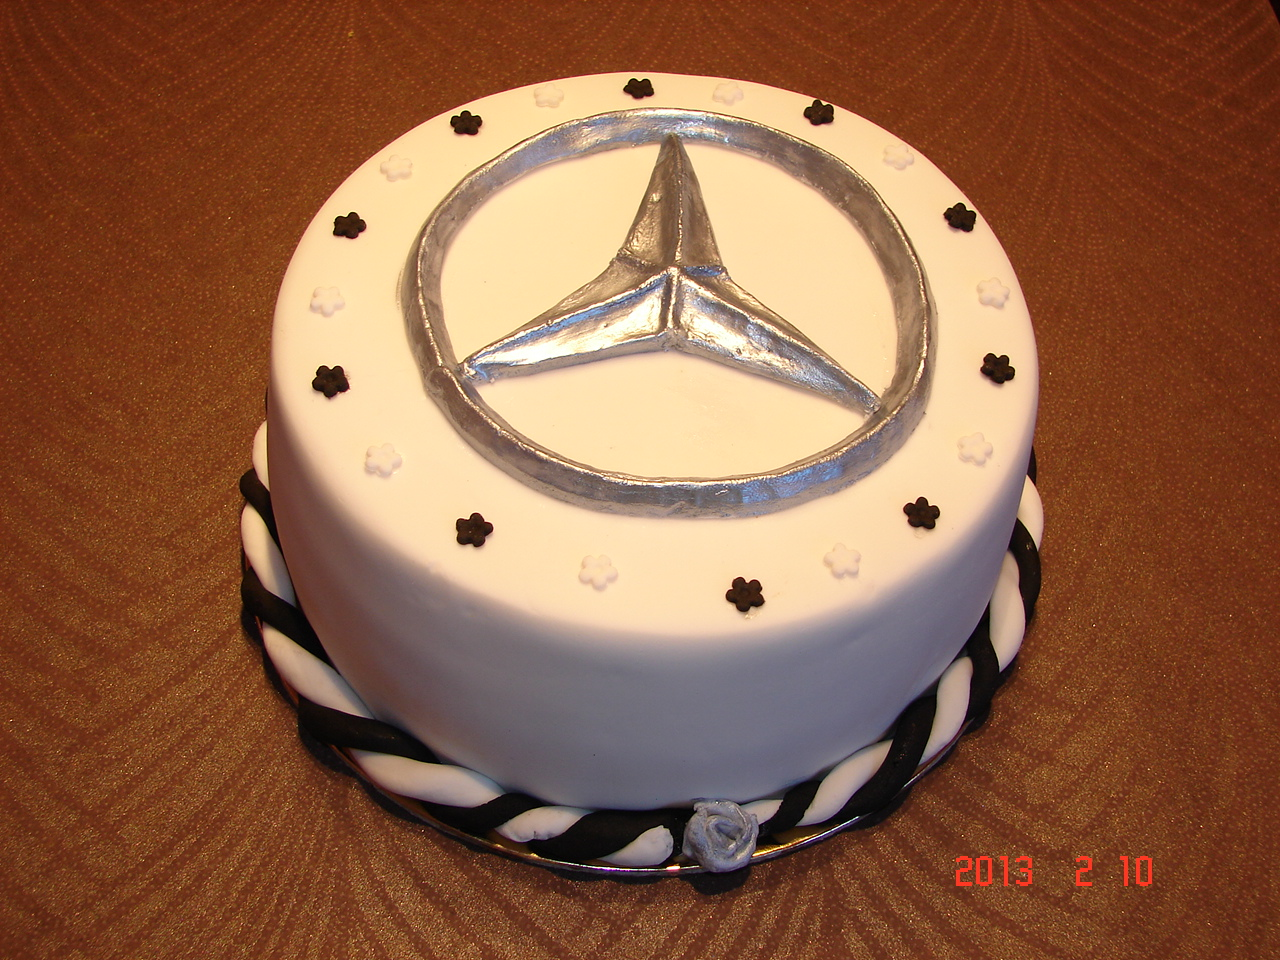 Birthday Mercedes Cakes And Cupcakes Mercedes Benz Car Cake Pops